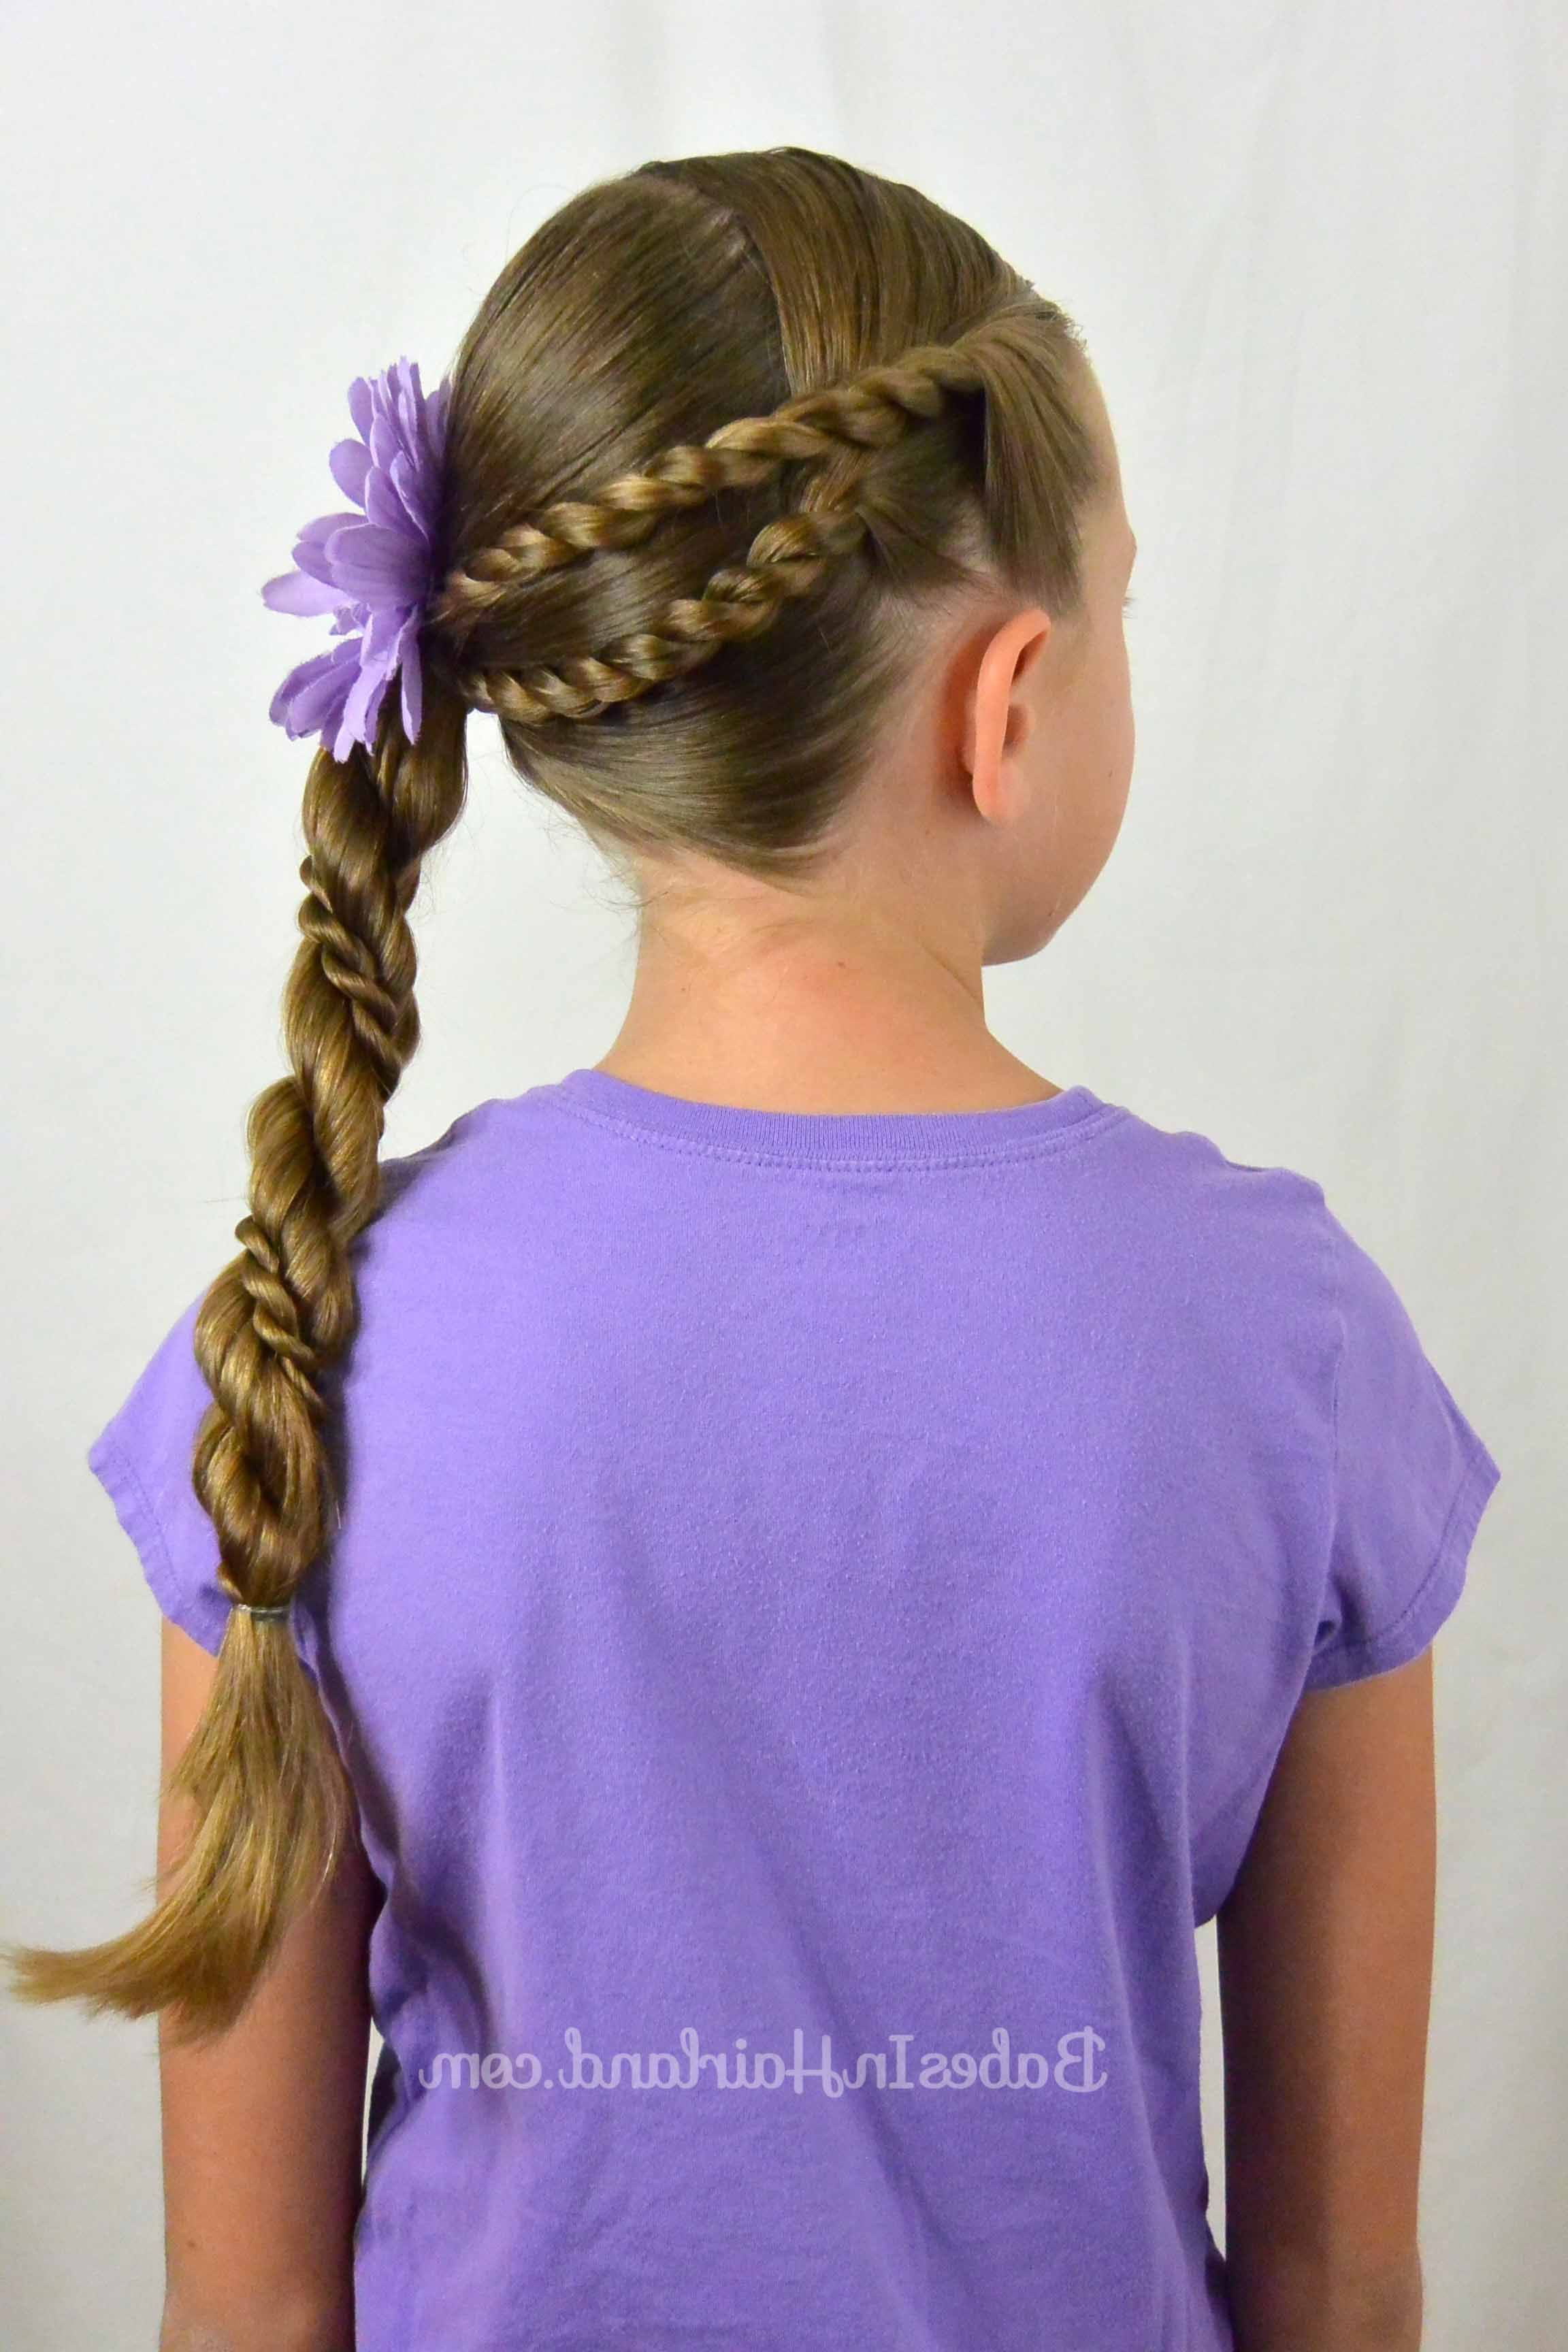 2019 Intricate Rope Braid Ponytail Hairstyles Regarding Rope Braids And Twisted Ponytail (View 2 of 20)